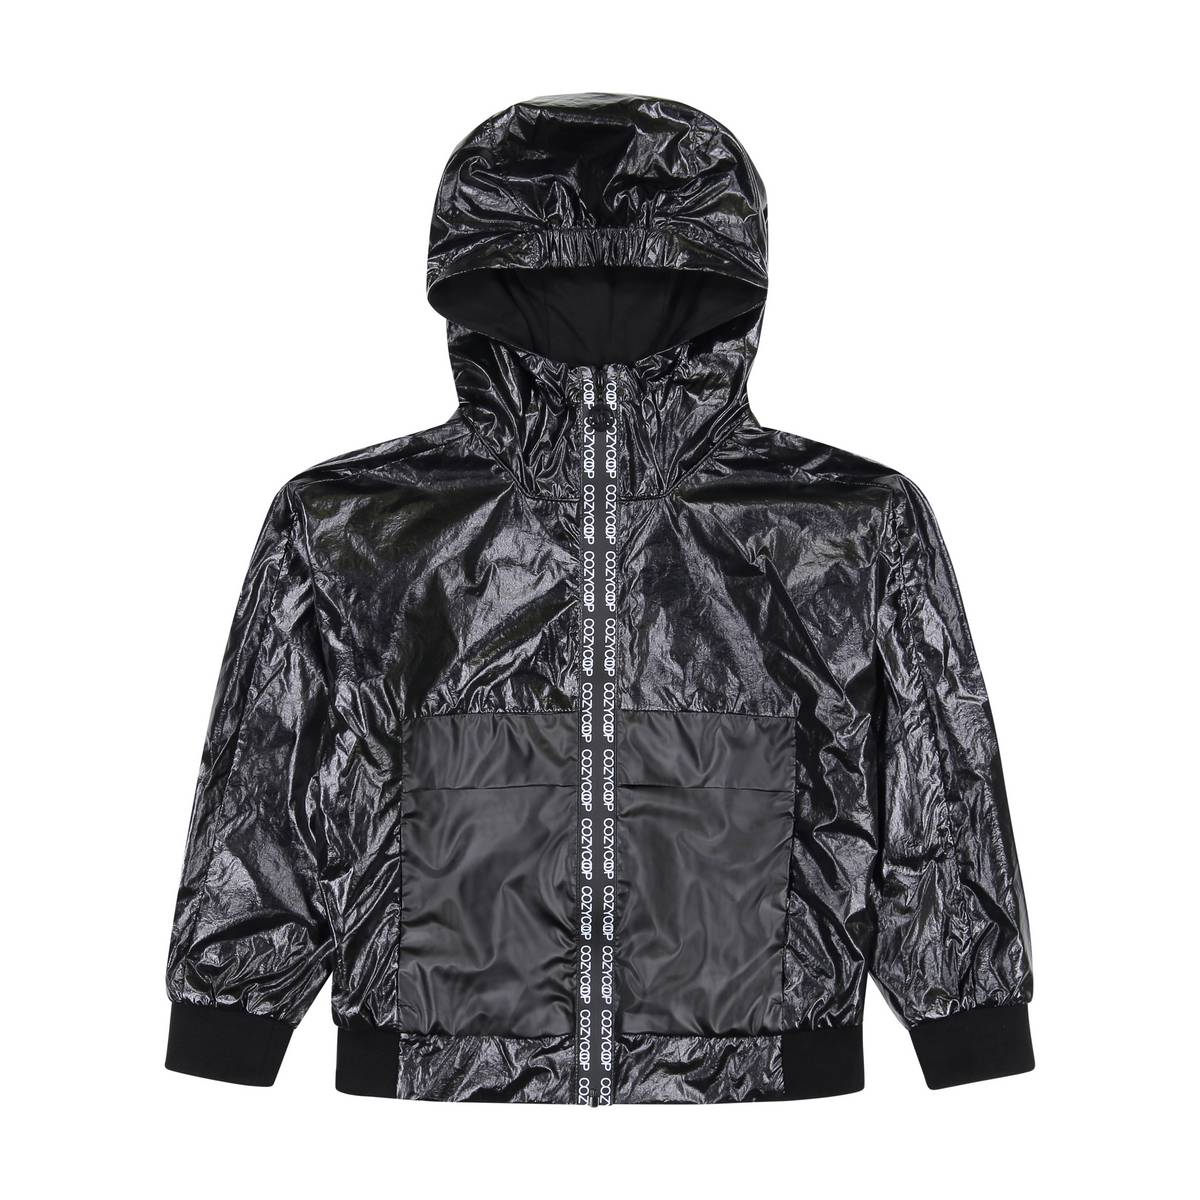 Cozy Coop Black Spring Jacket